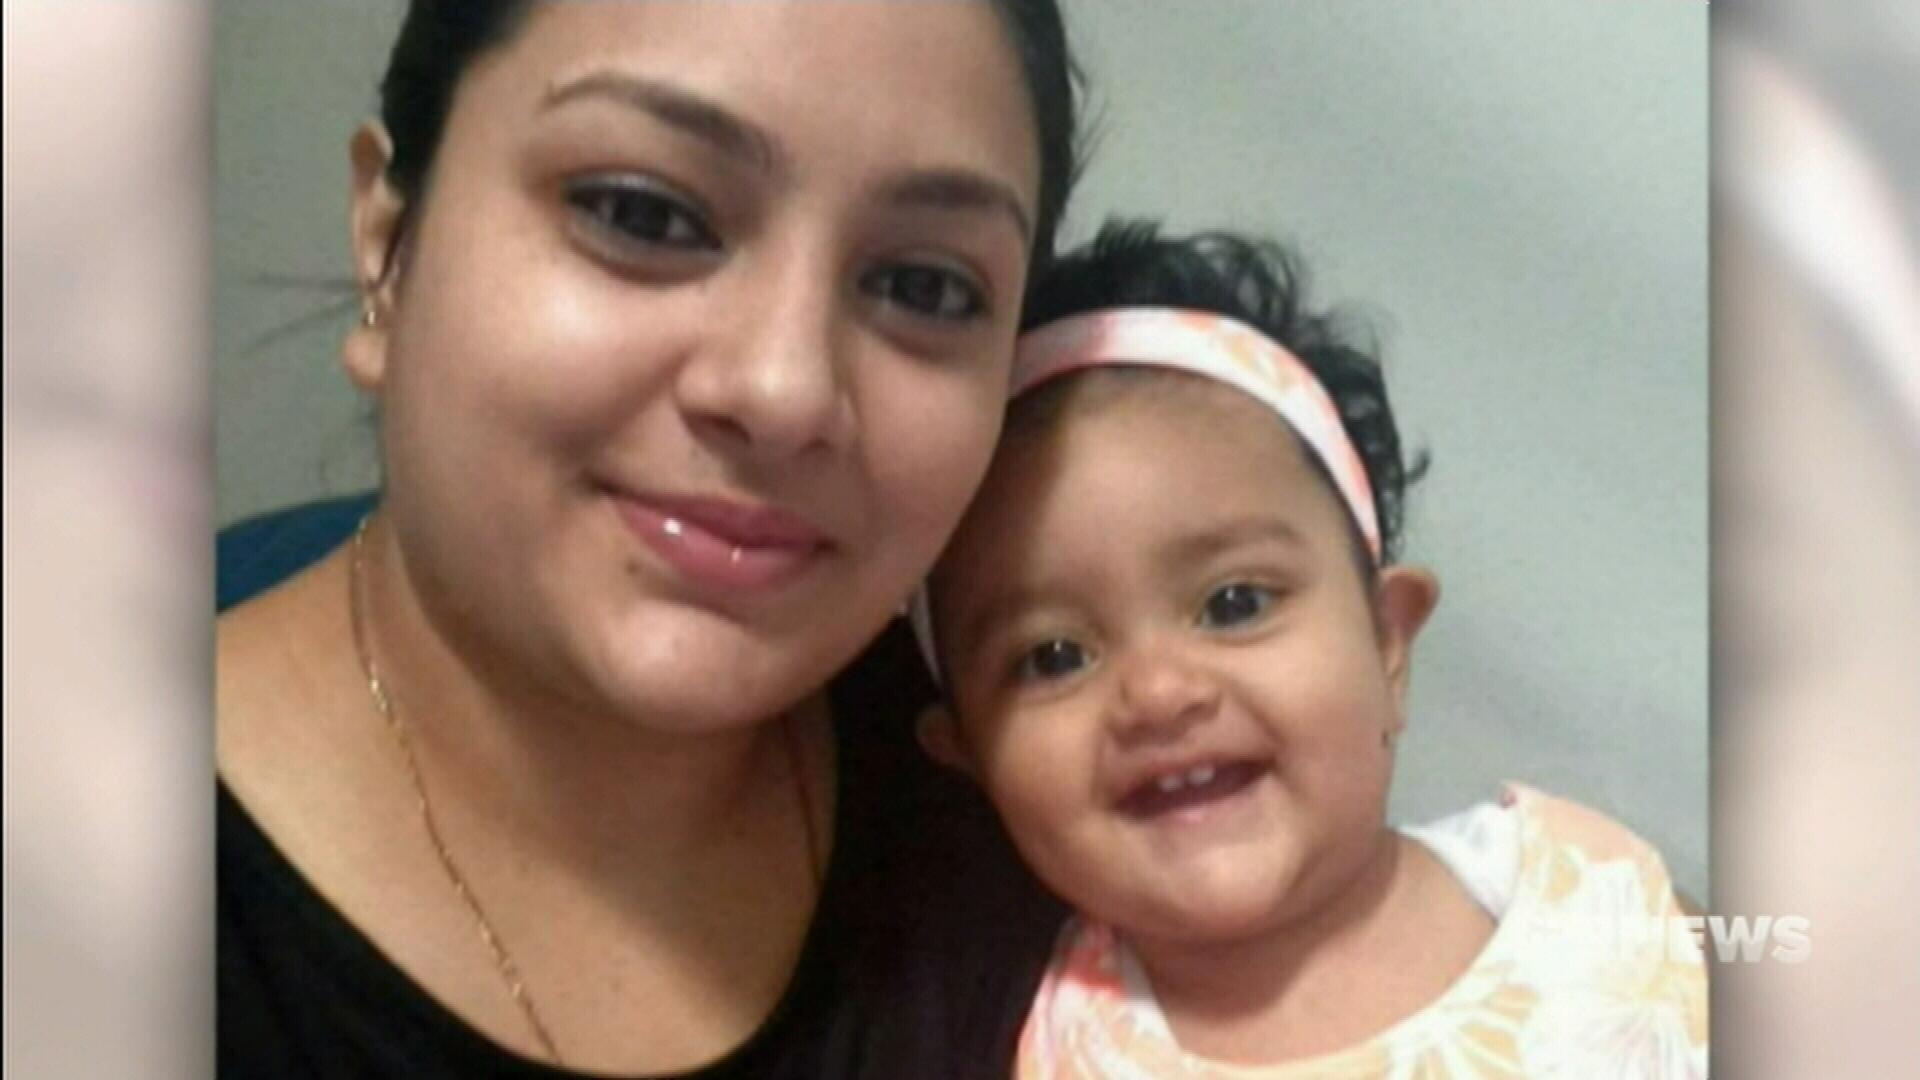 Mother admits to smothering 15-month-old daughter to death